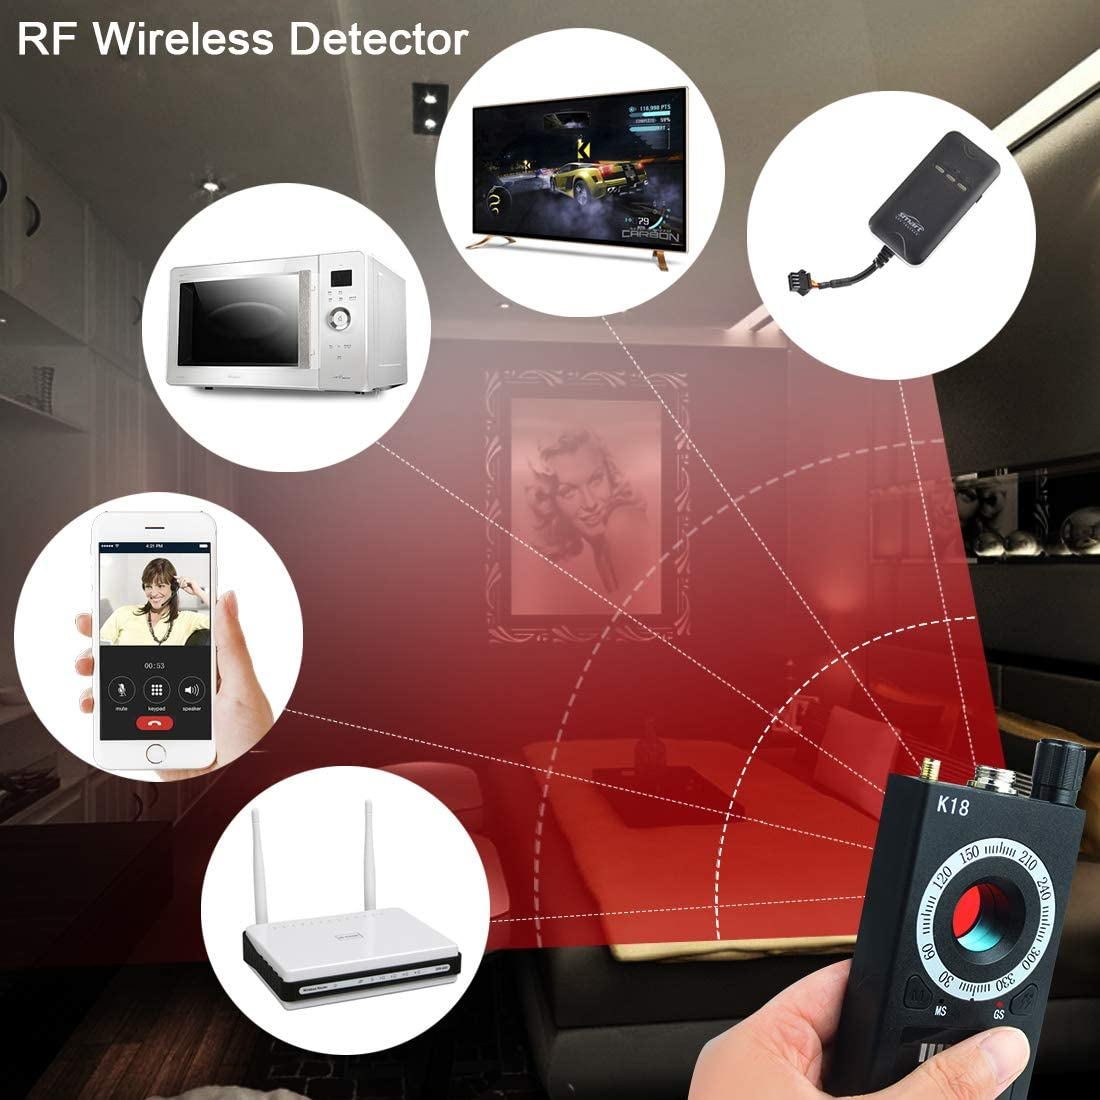 Magnetic Field GPS Locator Bug Detector,Wireless Bug Detector,Updated Version of CC308+ Hidden Camera Detector,Anti Spy Detector for RF Signal Detector,GSM Tracking,Camera Finder